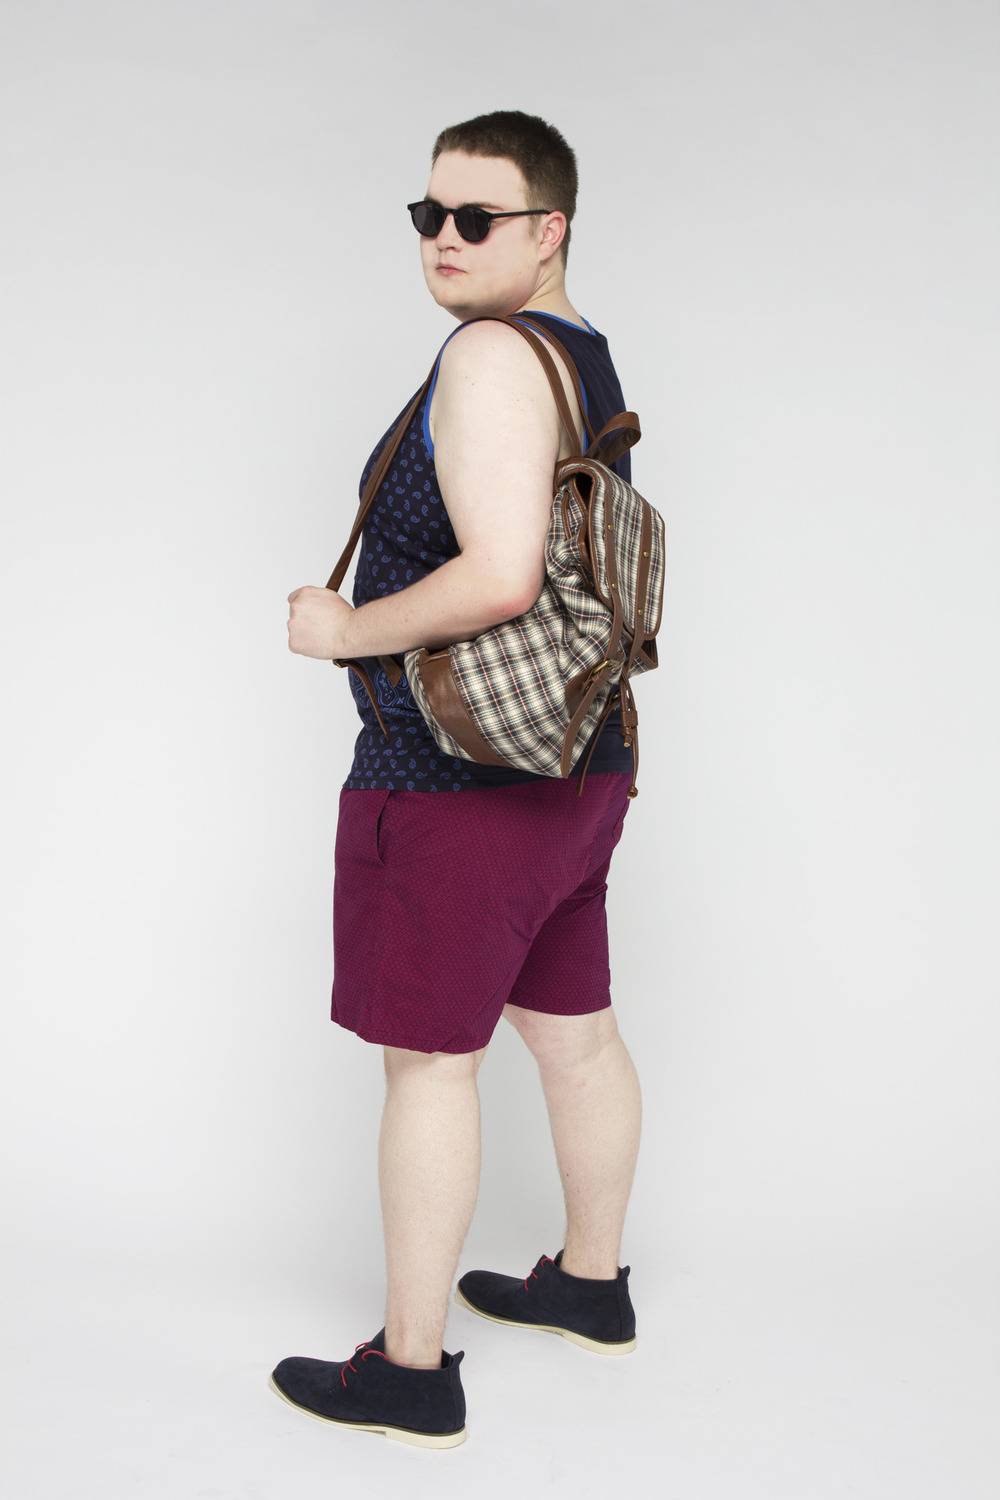 9 Plus Size Cuties Share Tips For Androgynous Style ...